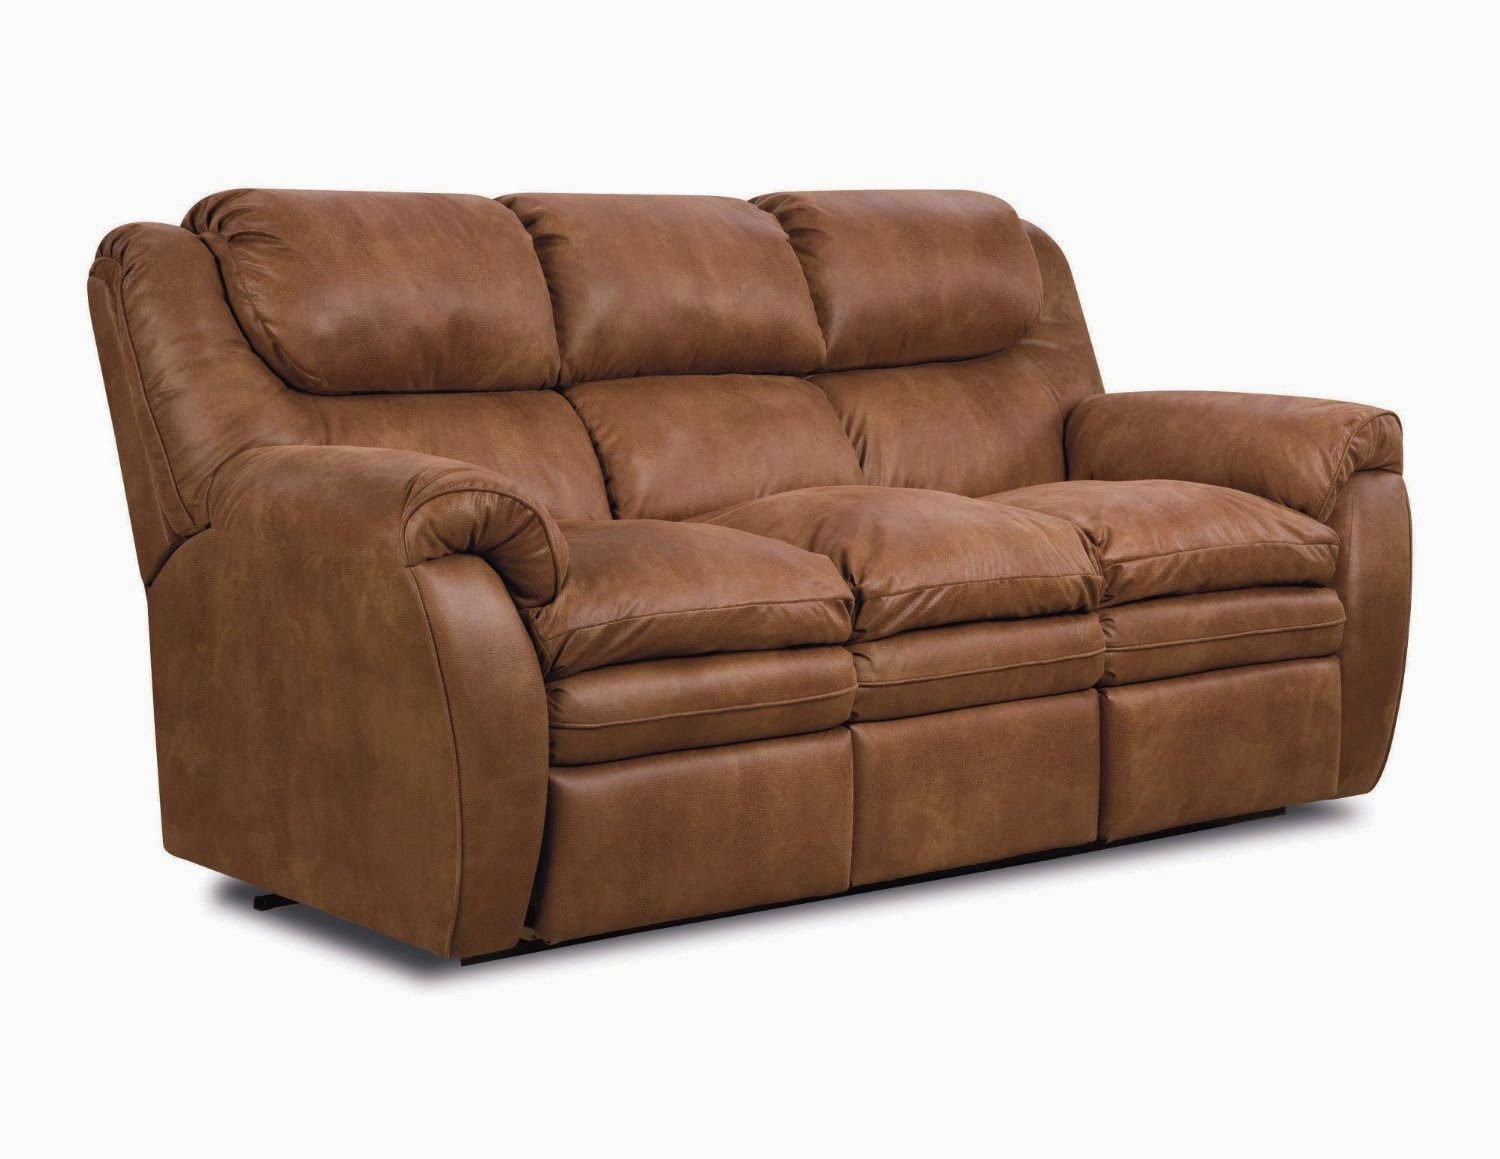 Cheap reclining sofas sale lane double reclining sofa for Furniture sofa sale